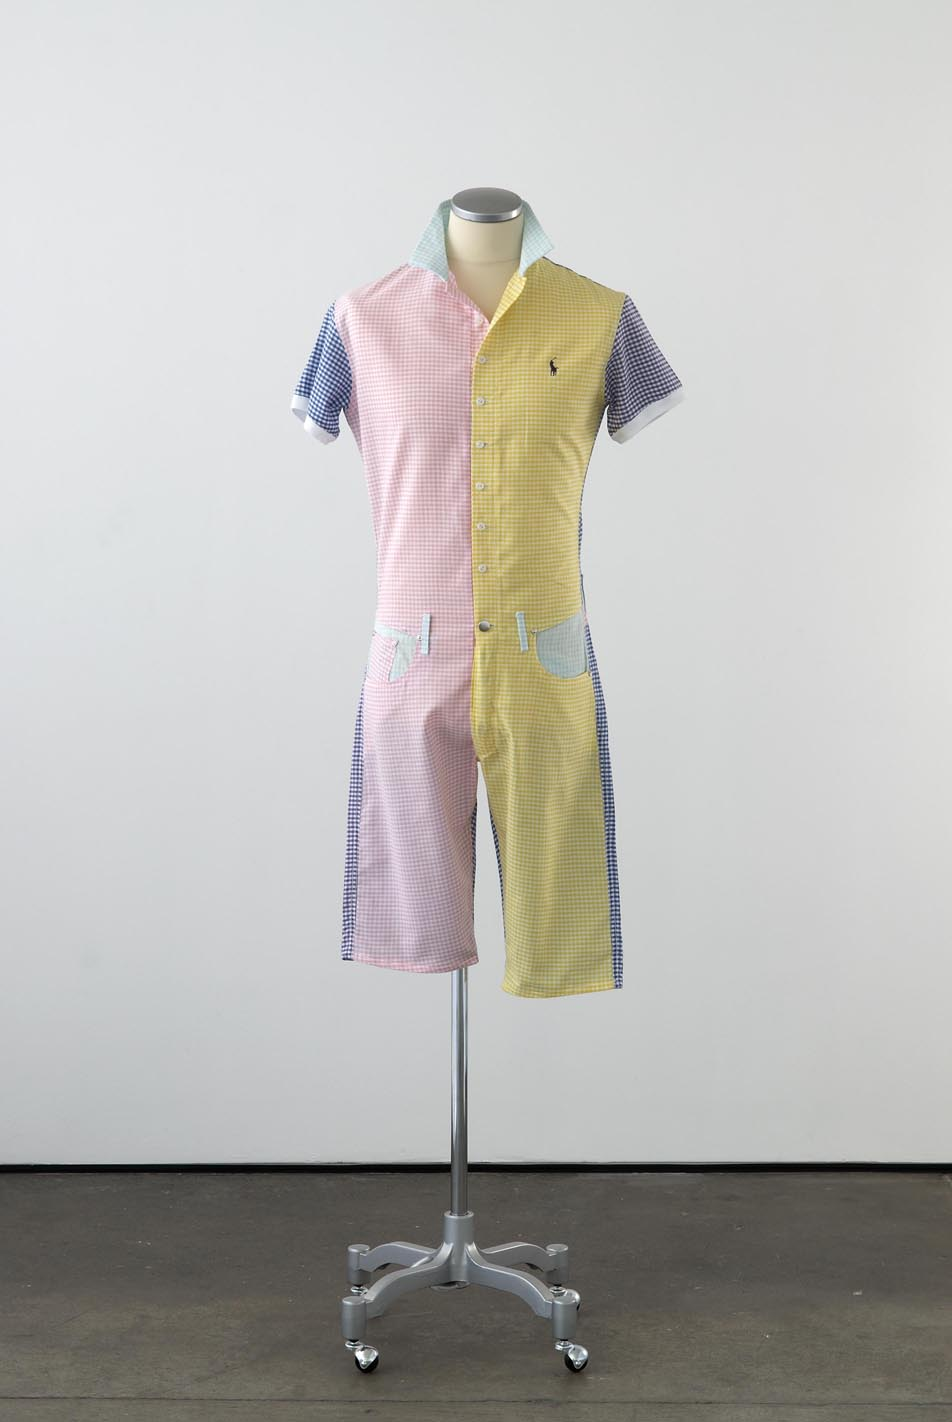 Matthew Darbyshire Standardised Production Clothing, Version 5 2009 Gingham cotton, cotton jersey & fittings on mannequin 185 x 45 x 34 cm